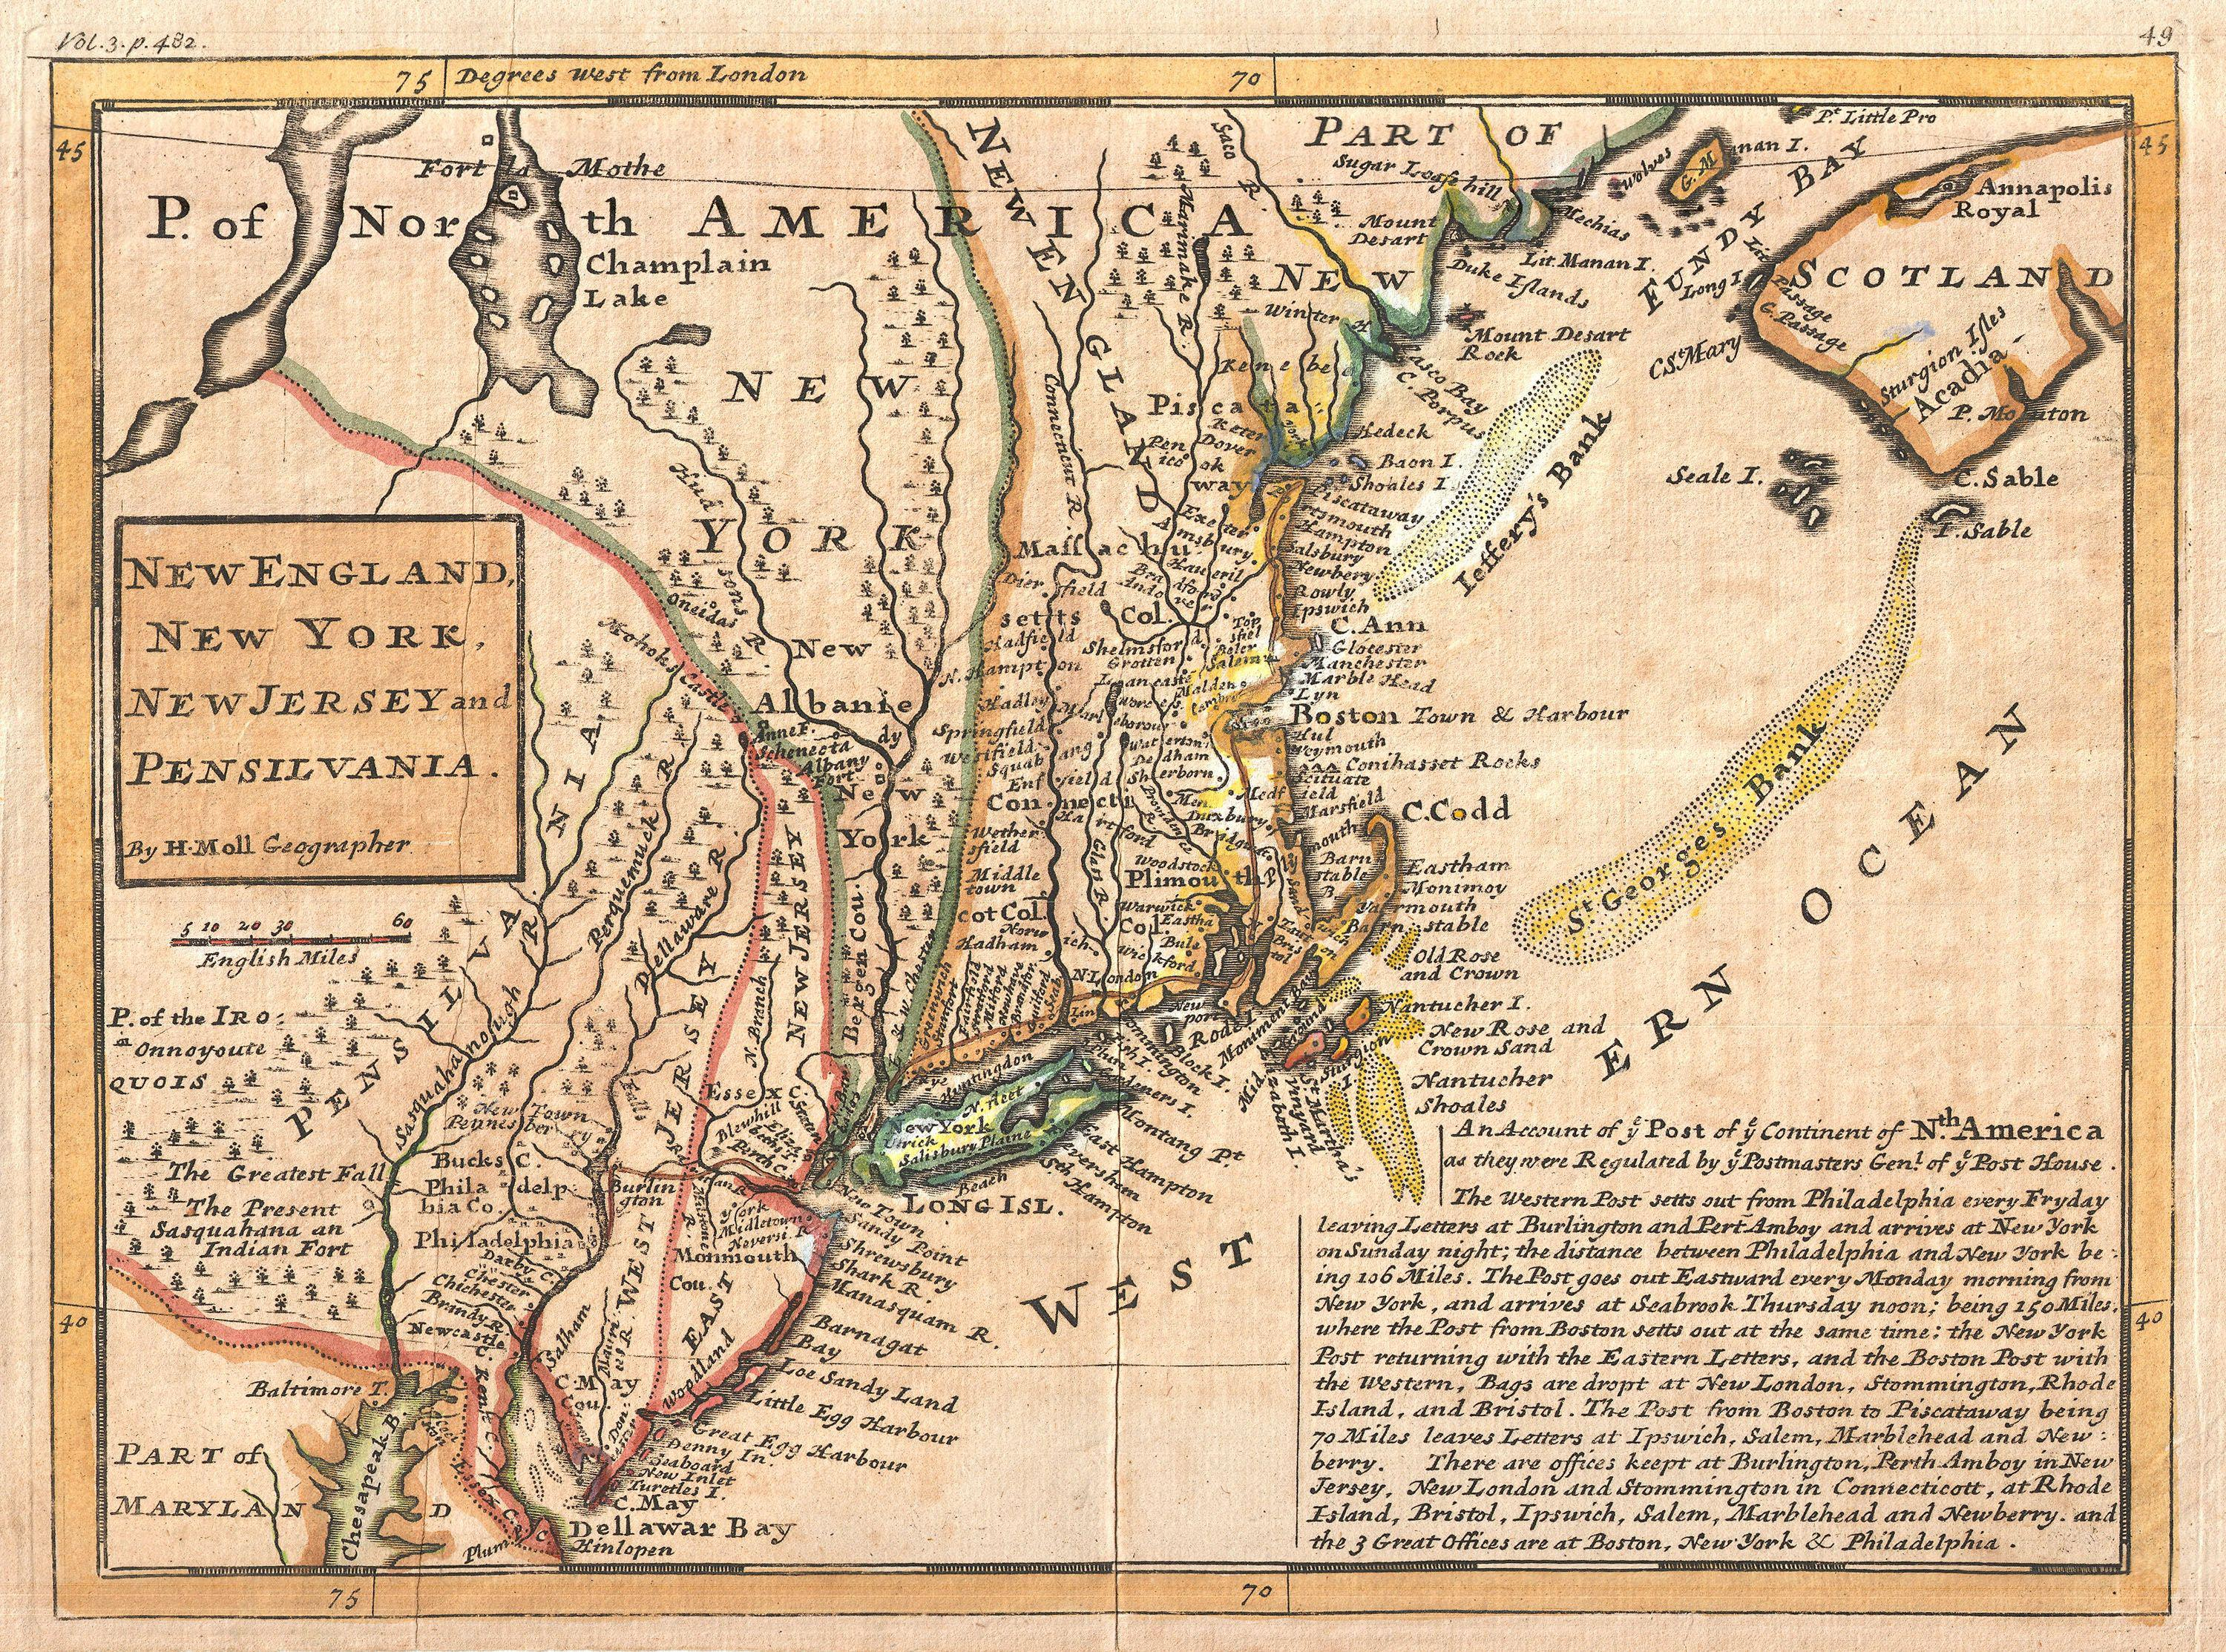 File:1729 Moll Map of New York, New England, and Pennsylvania (First